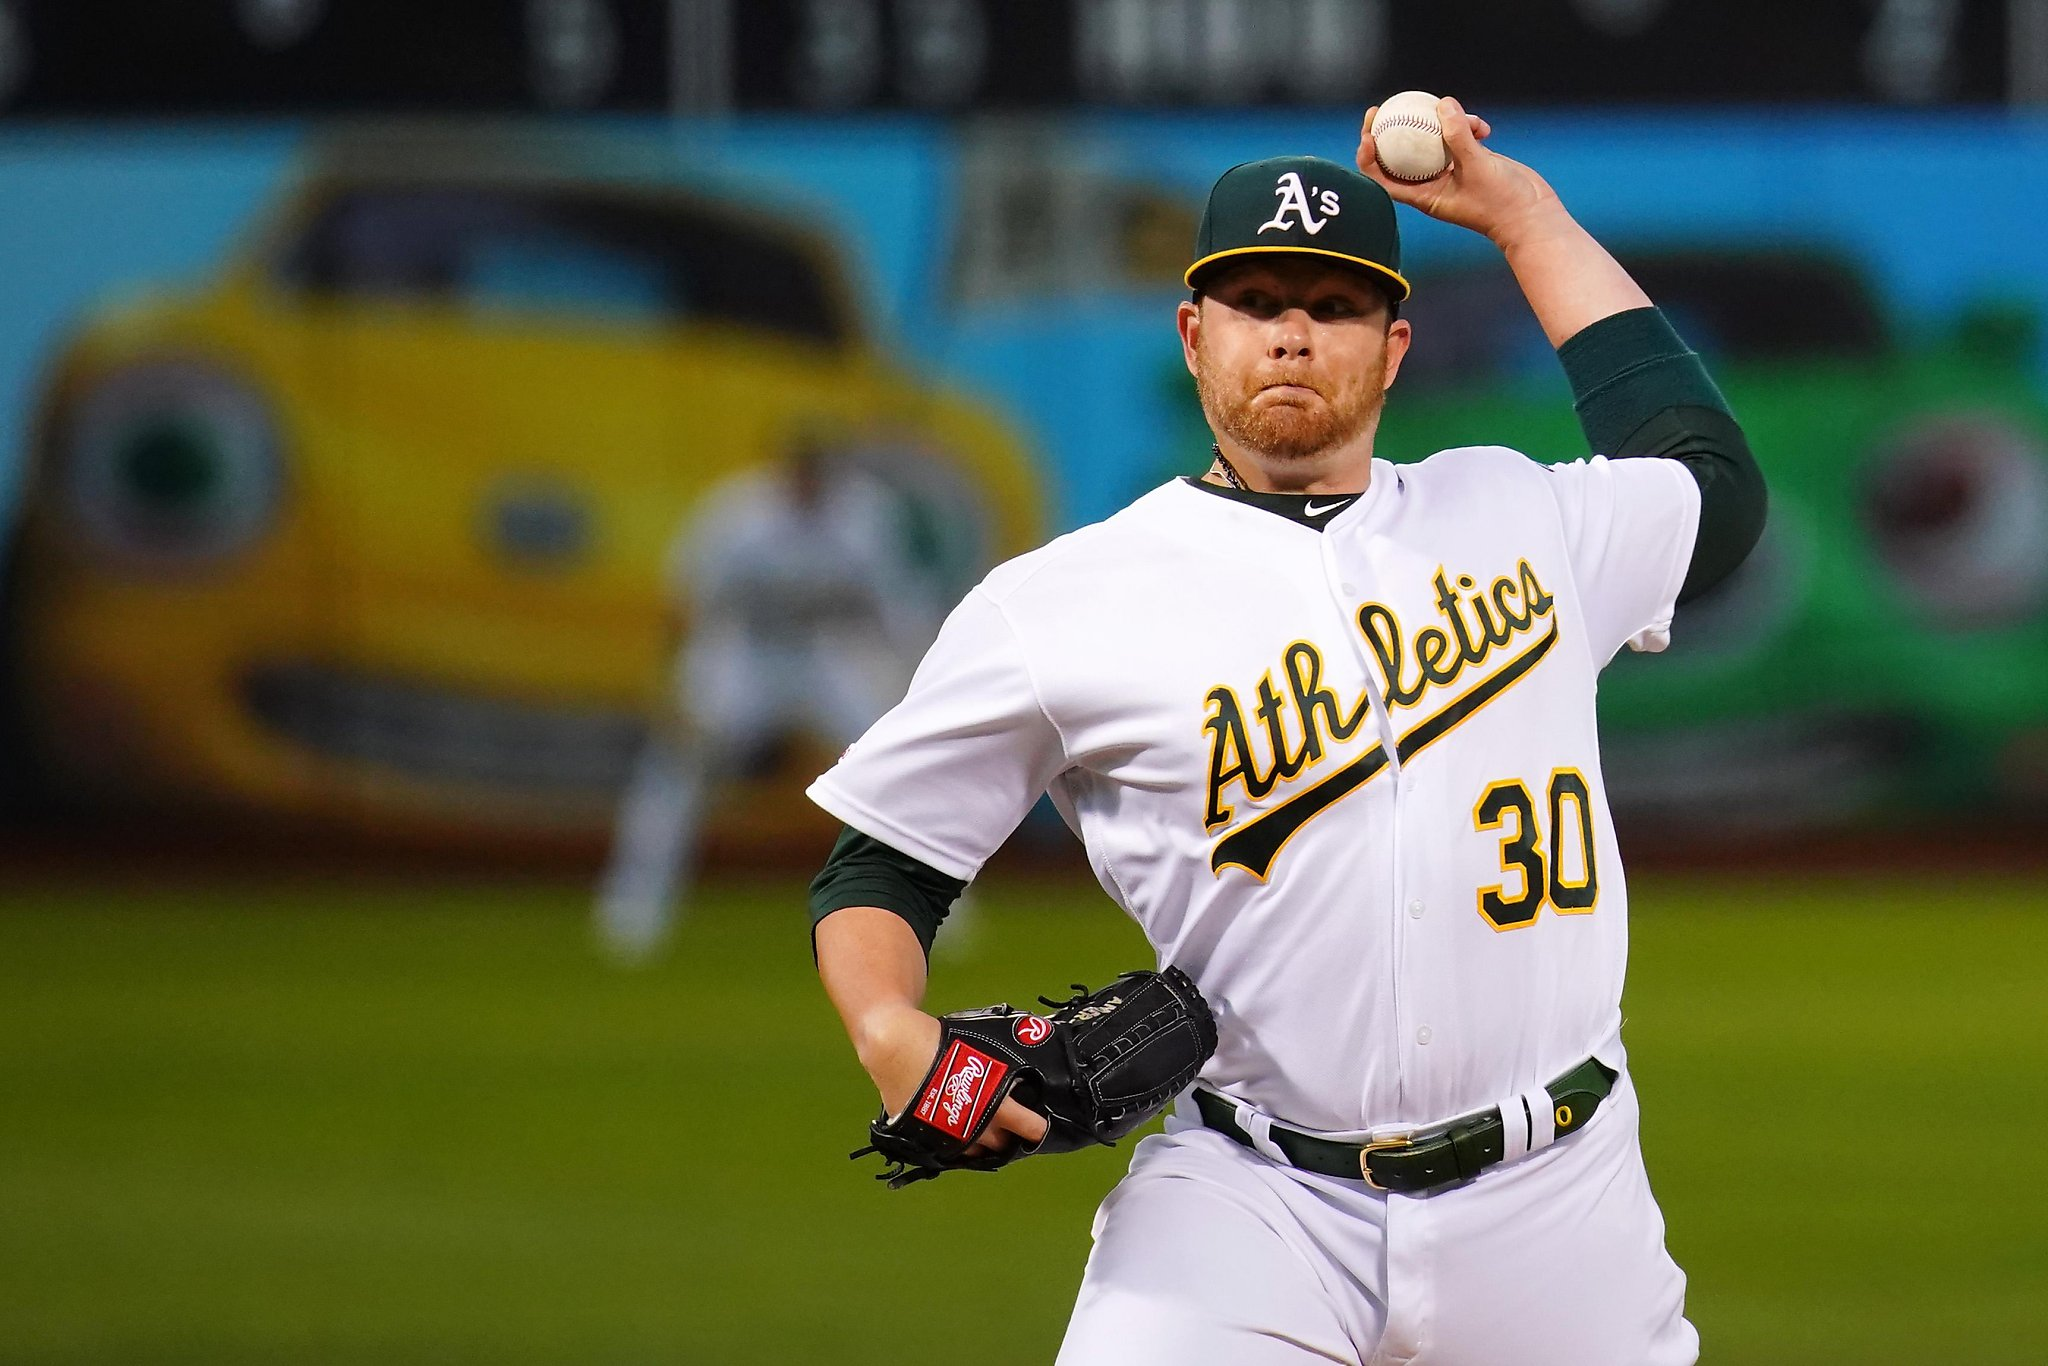 Former A's pitcher jokes the team couldn't cheat because the Coliseum is so terrible